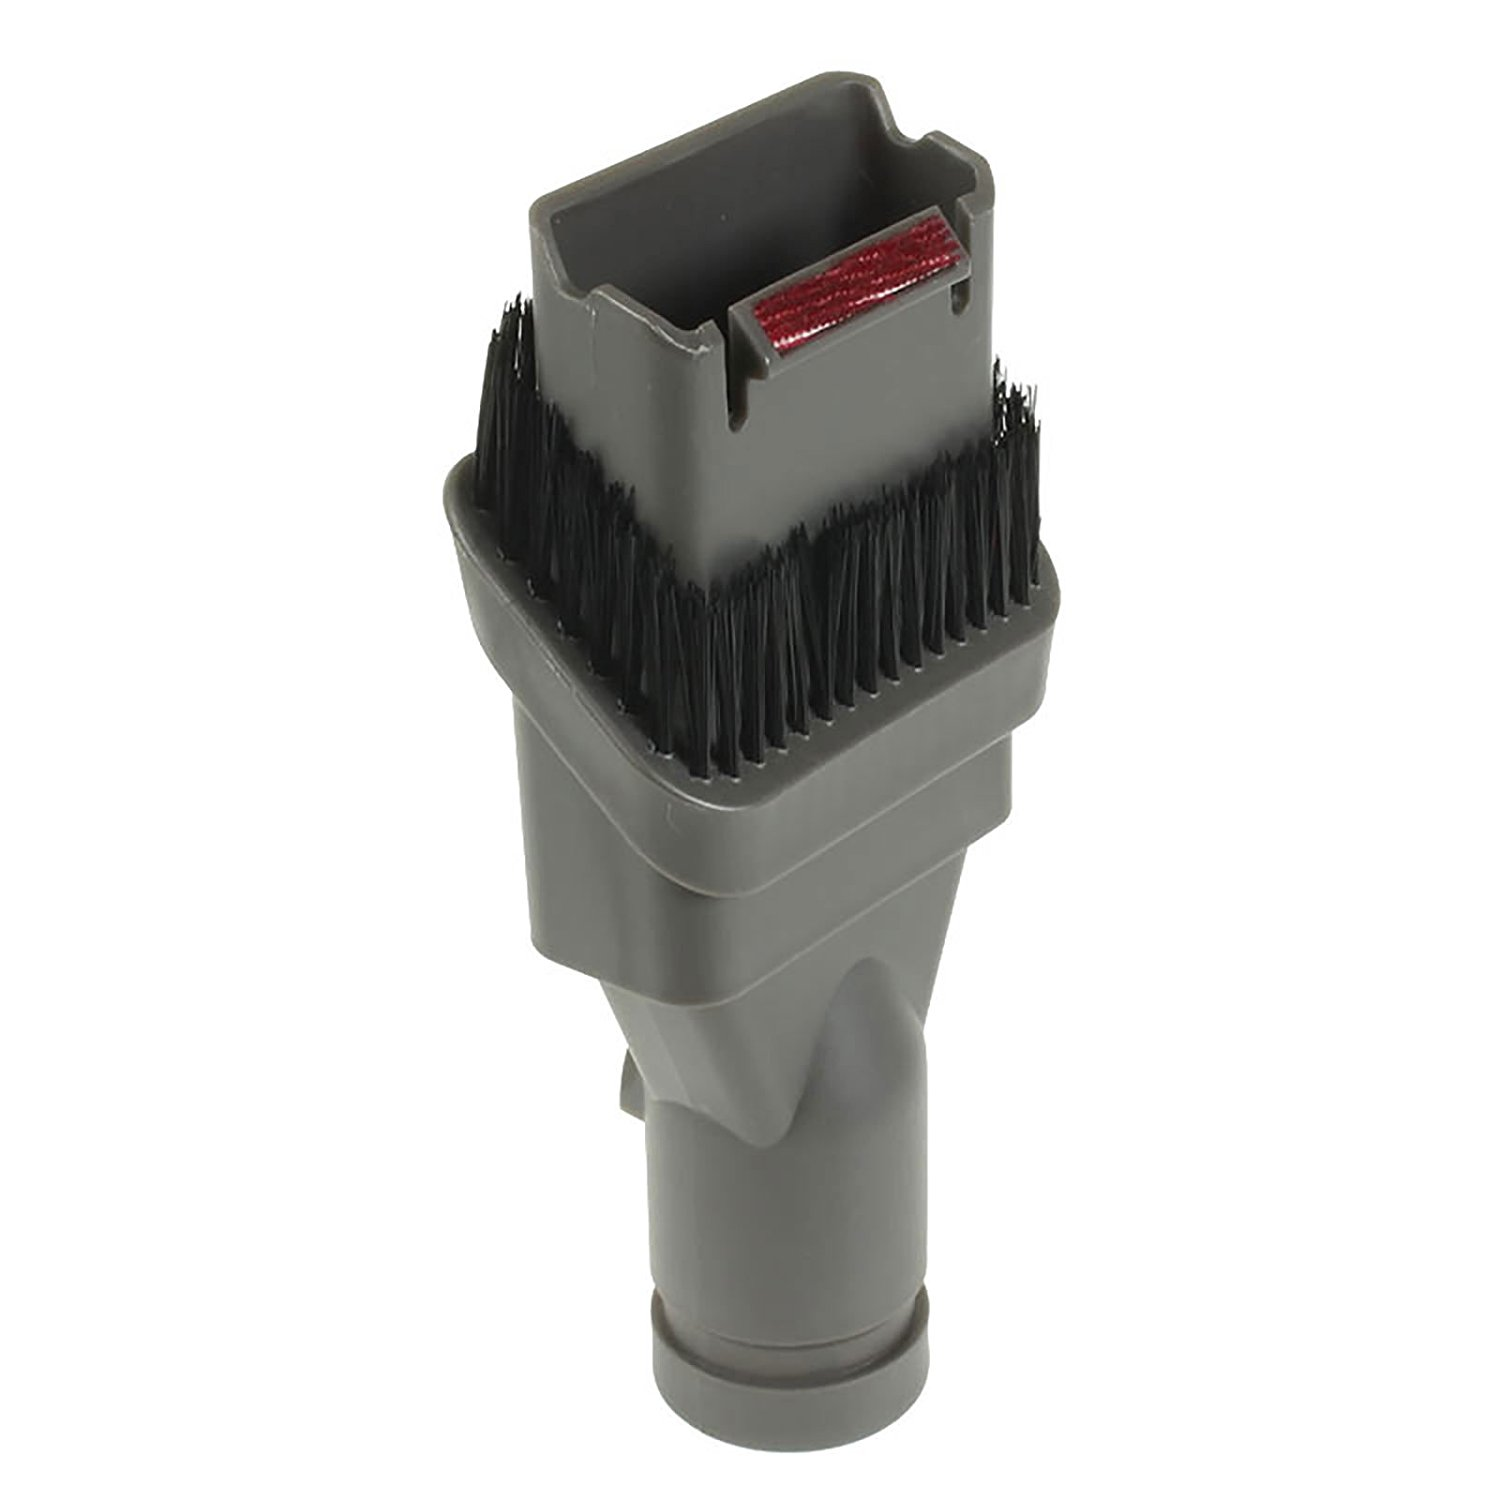 First4Spares Combination Dusting Brush Nozzle Tool For Dyson DC16 DC24 DC30 DC31 DC34 DC35 DC44 DC58 DC59 Vacuum Cleaners